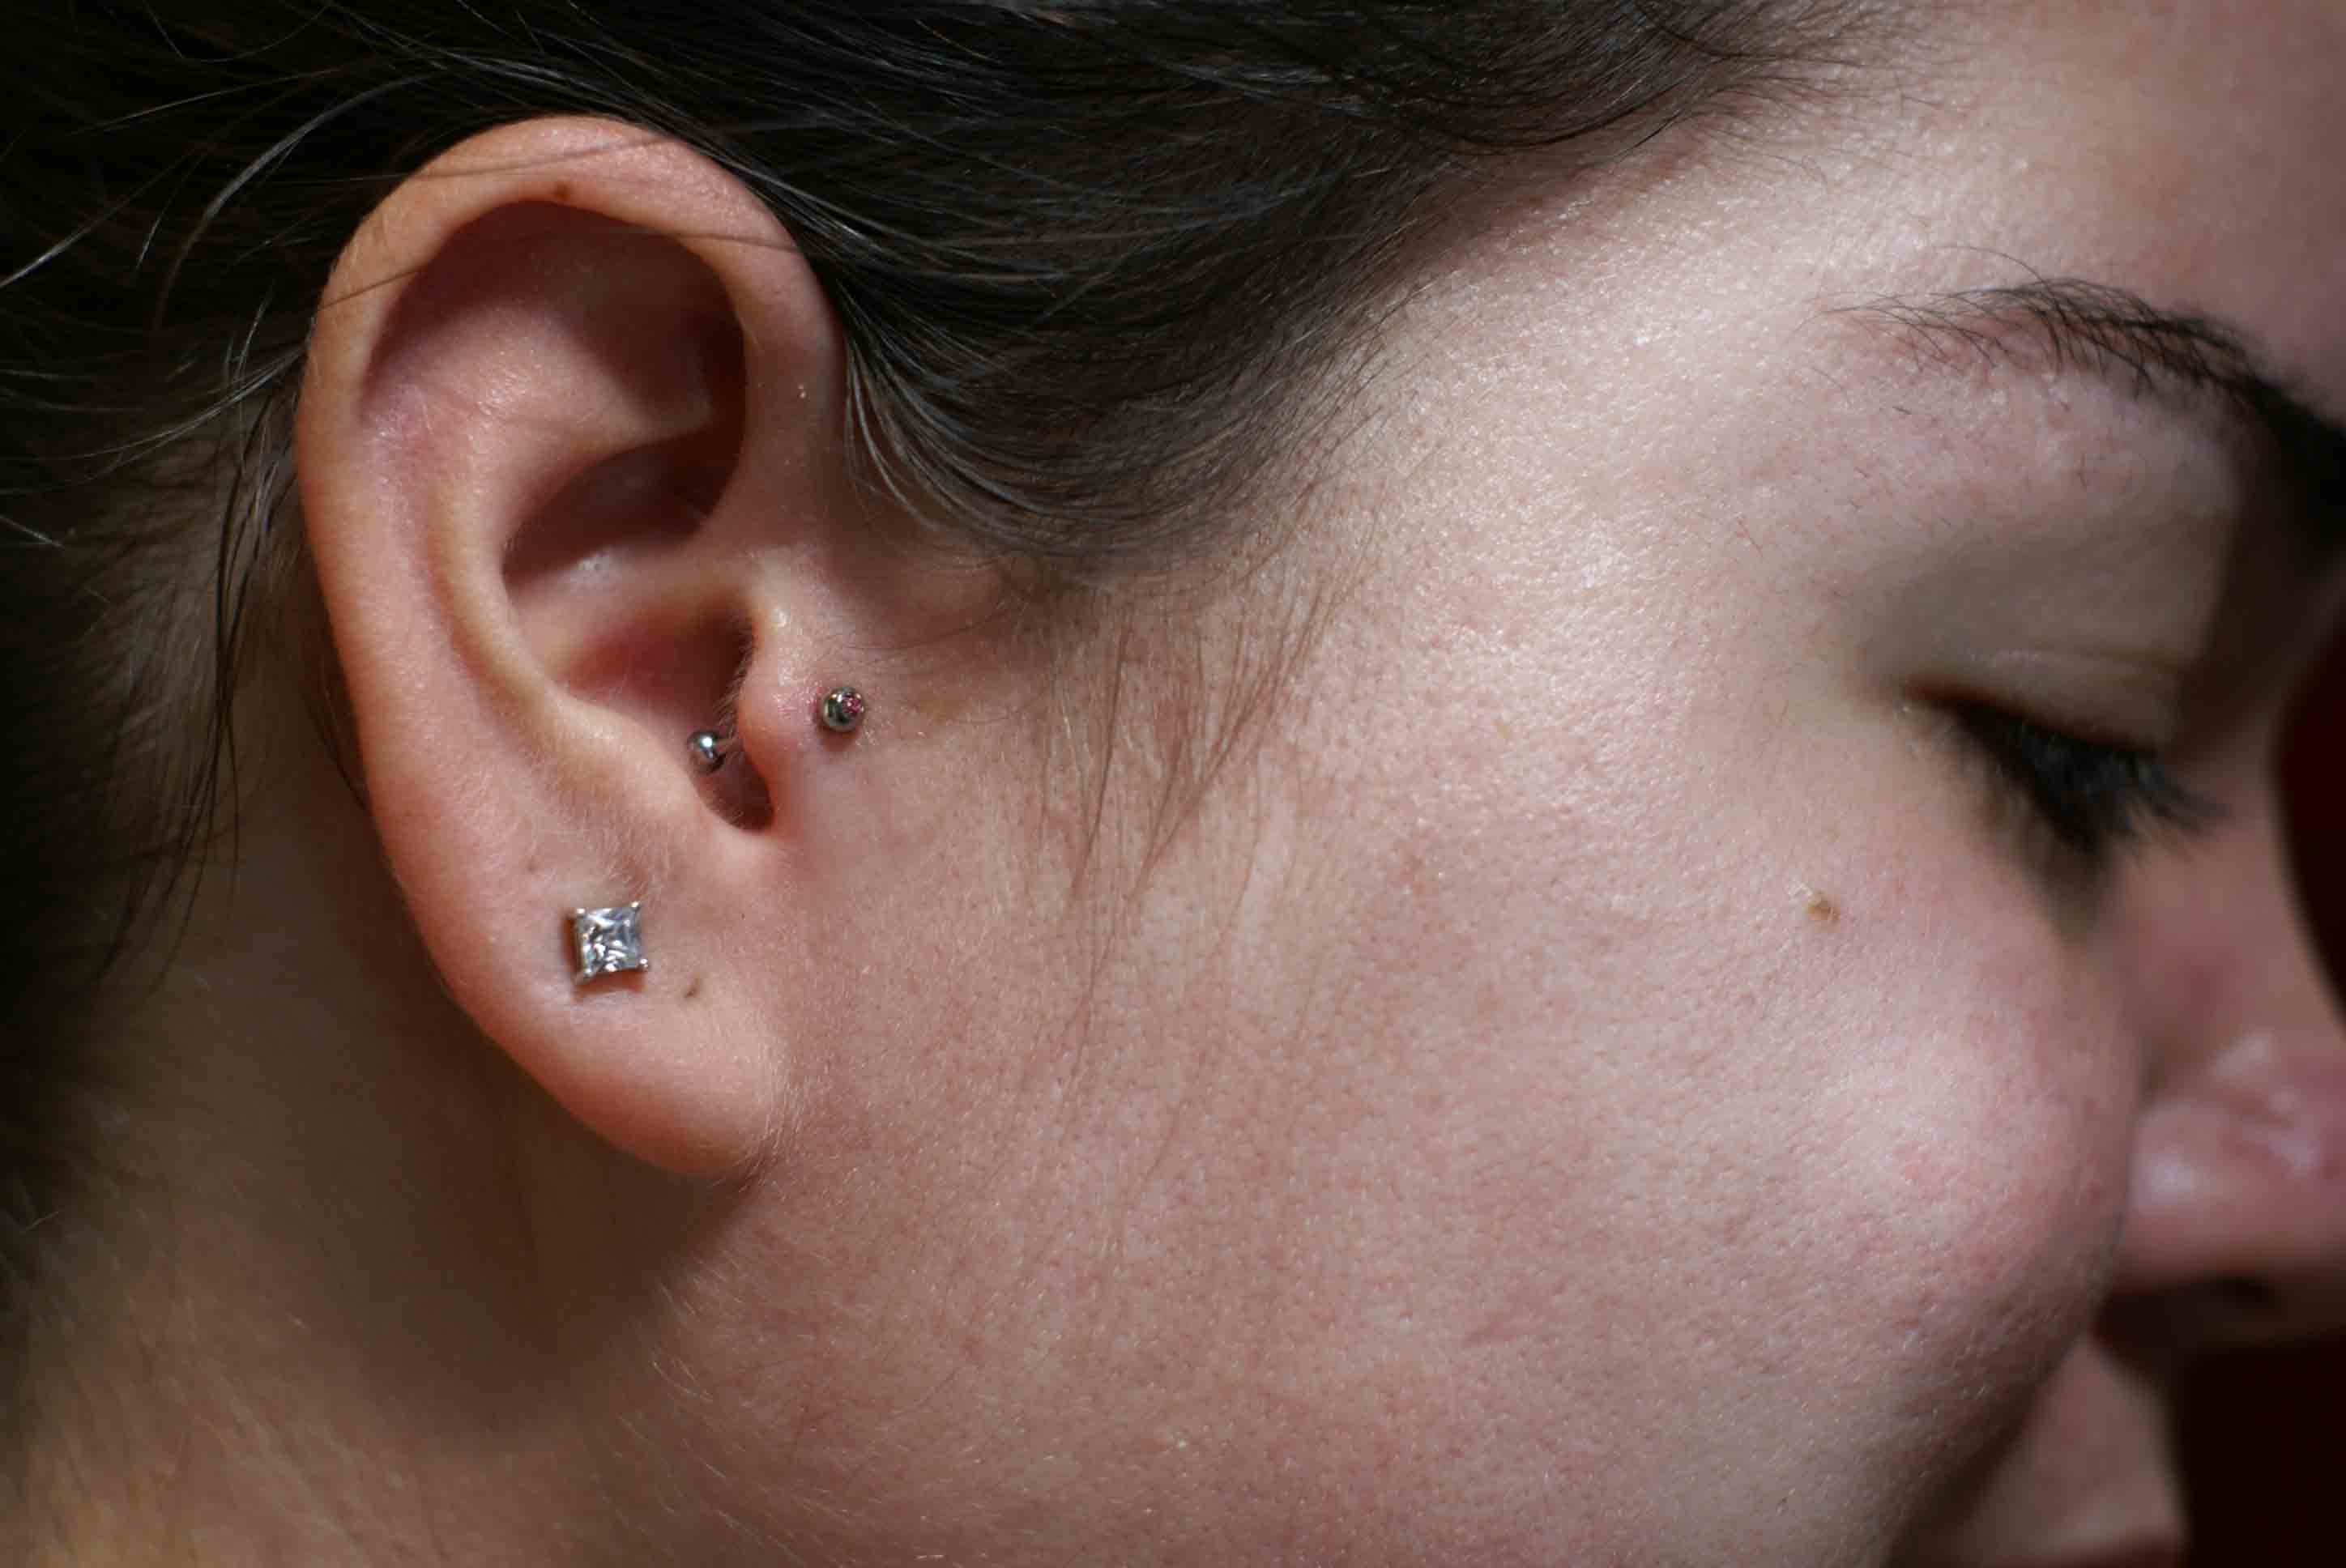 The pericing between the cheek and the tragus looks like a ...